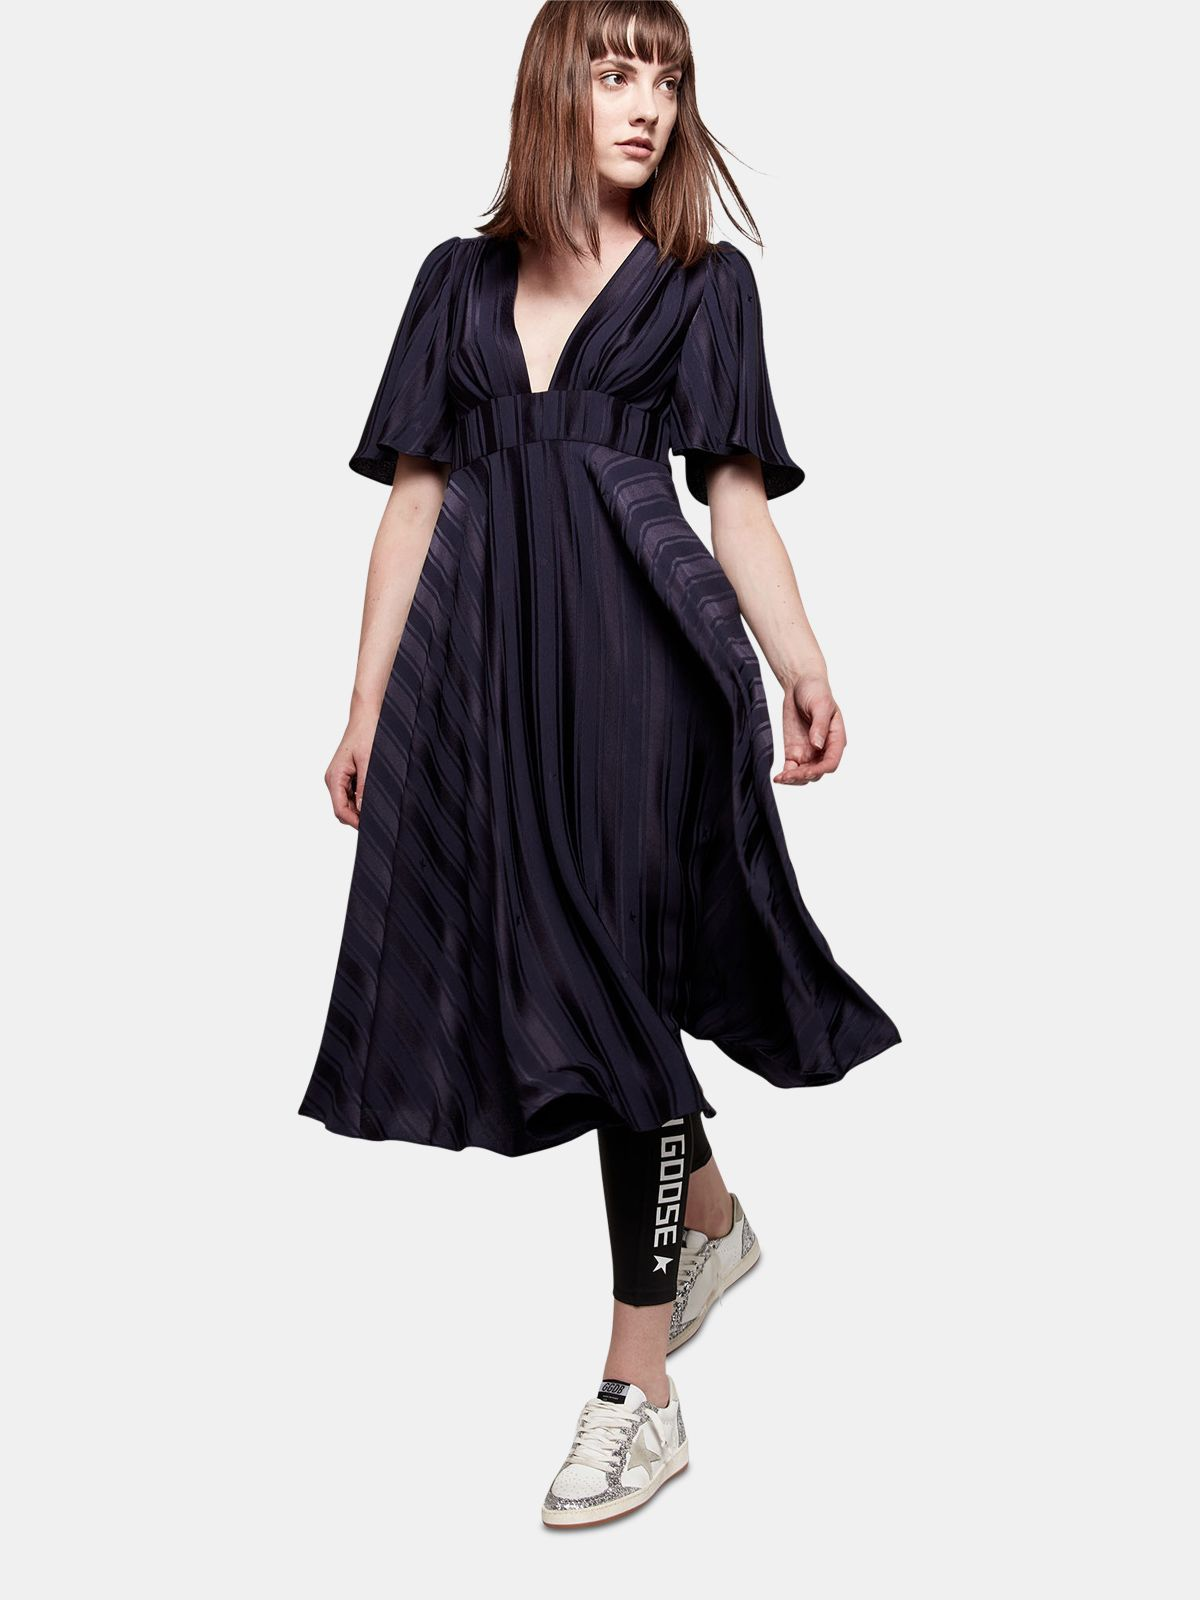 Golden Goose - Hana dress with belt at the waist and ruffles on the back in